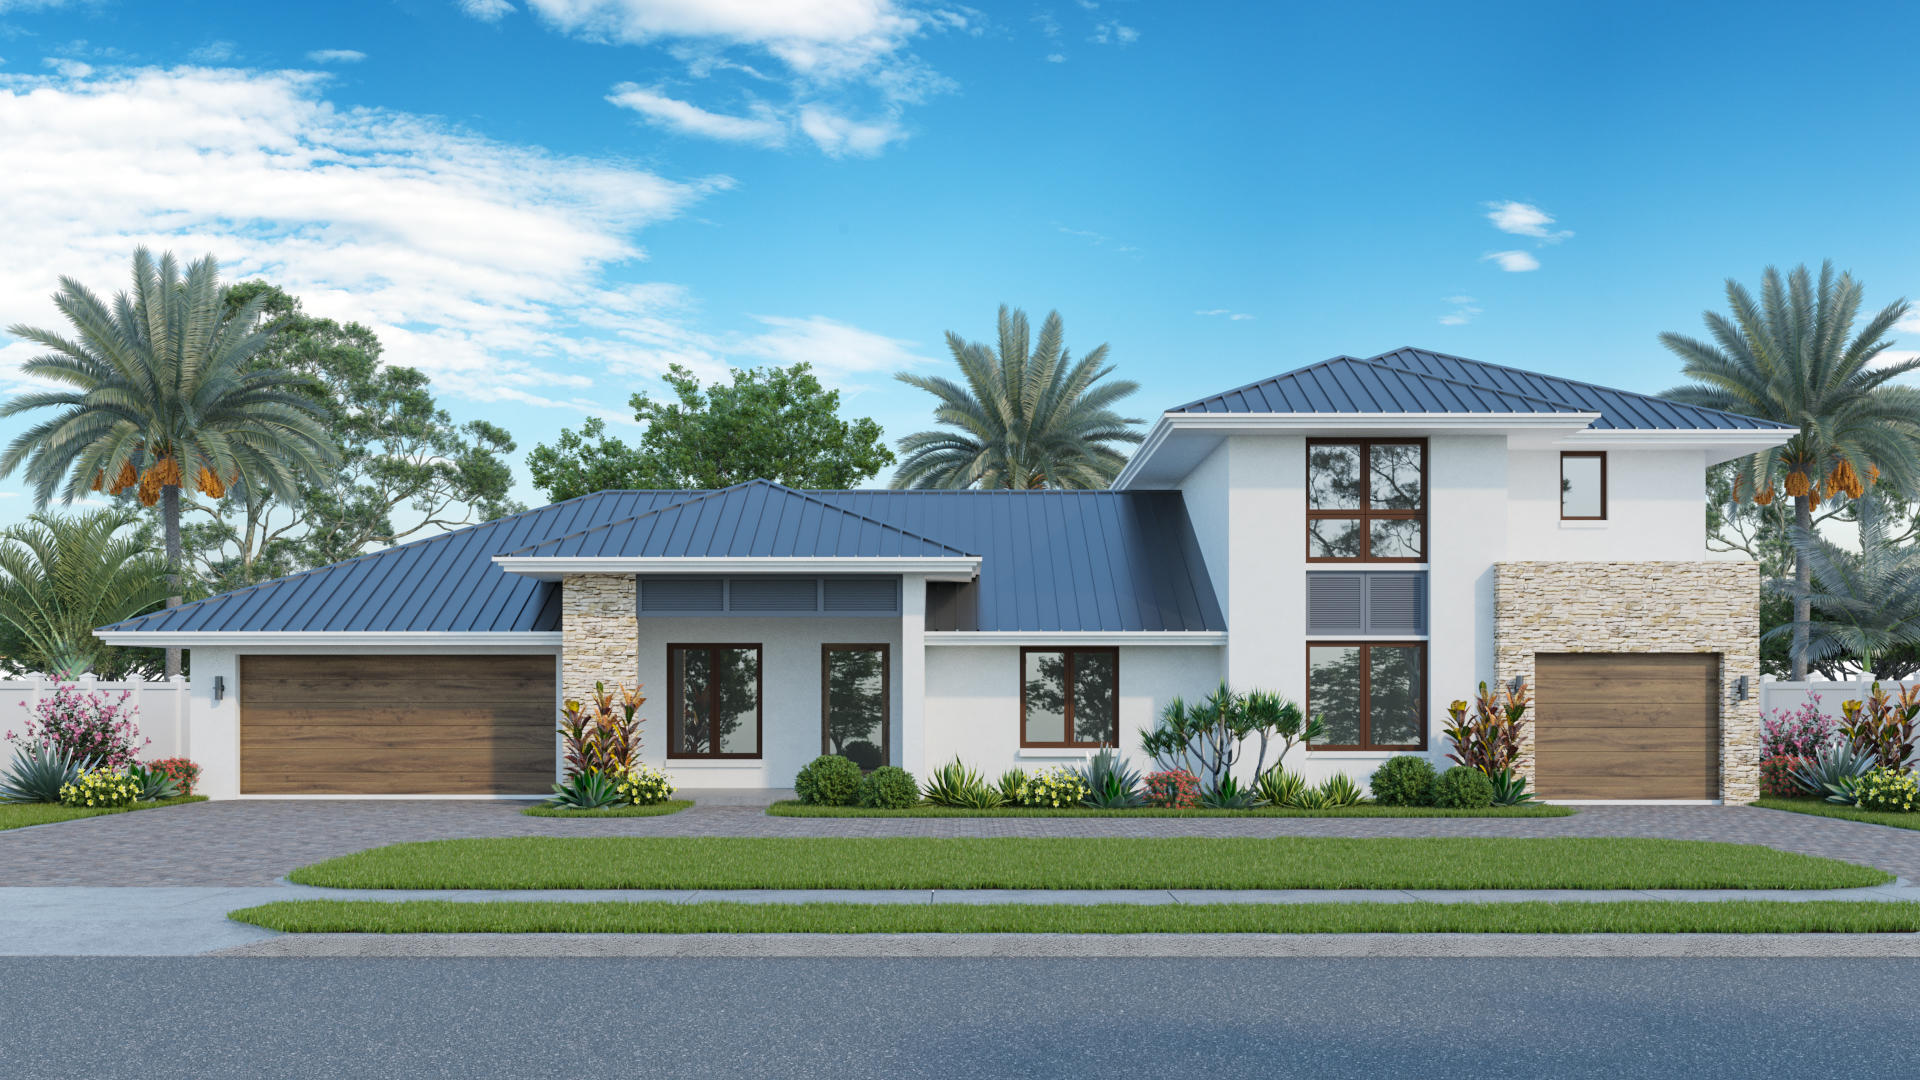 515 1st Avenue, Delray Beach, Florida 33444, 5 Bedrooms Bedrooms, ,4 BathroomsBathrooms,Single Family Detached,For Sale,1st,RX-10686752